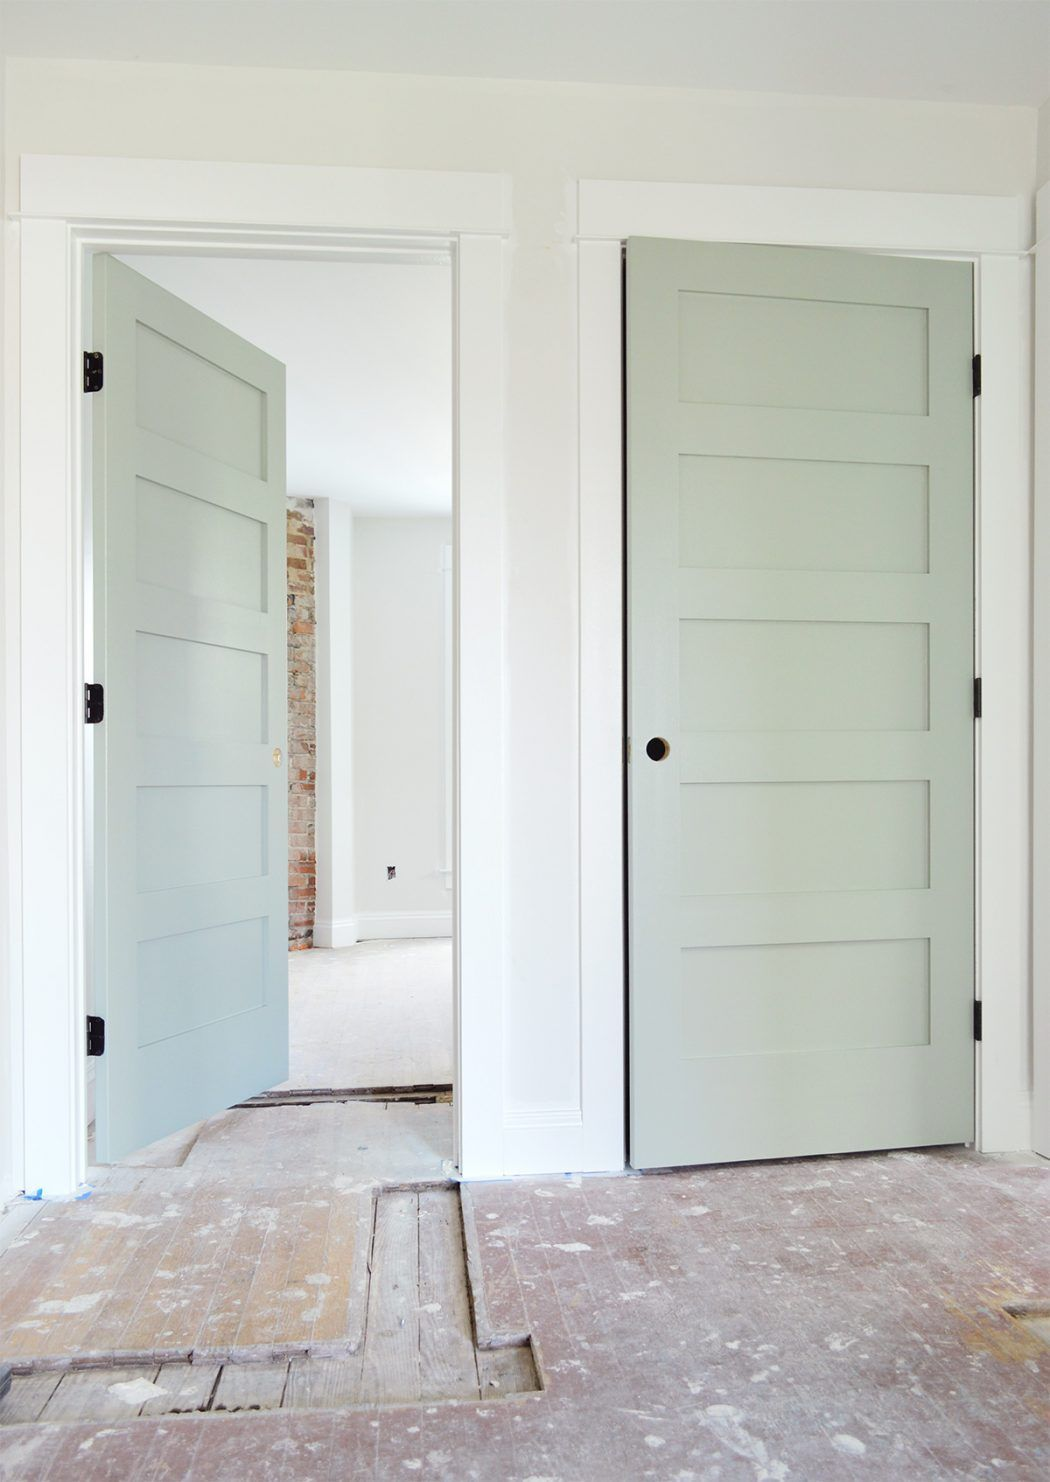 Sherwin Williams Oyster Bay Which Is Sort Of A Gray Blue With A Hit Of Seafoam In It It S Very Neu Interior Door Colors Painted Interior Doors Doors Interior